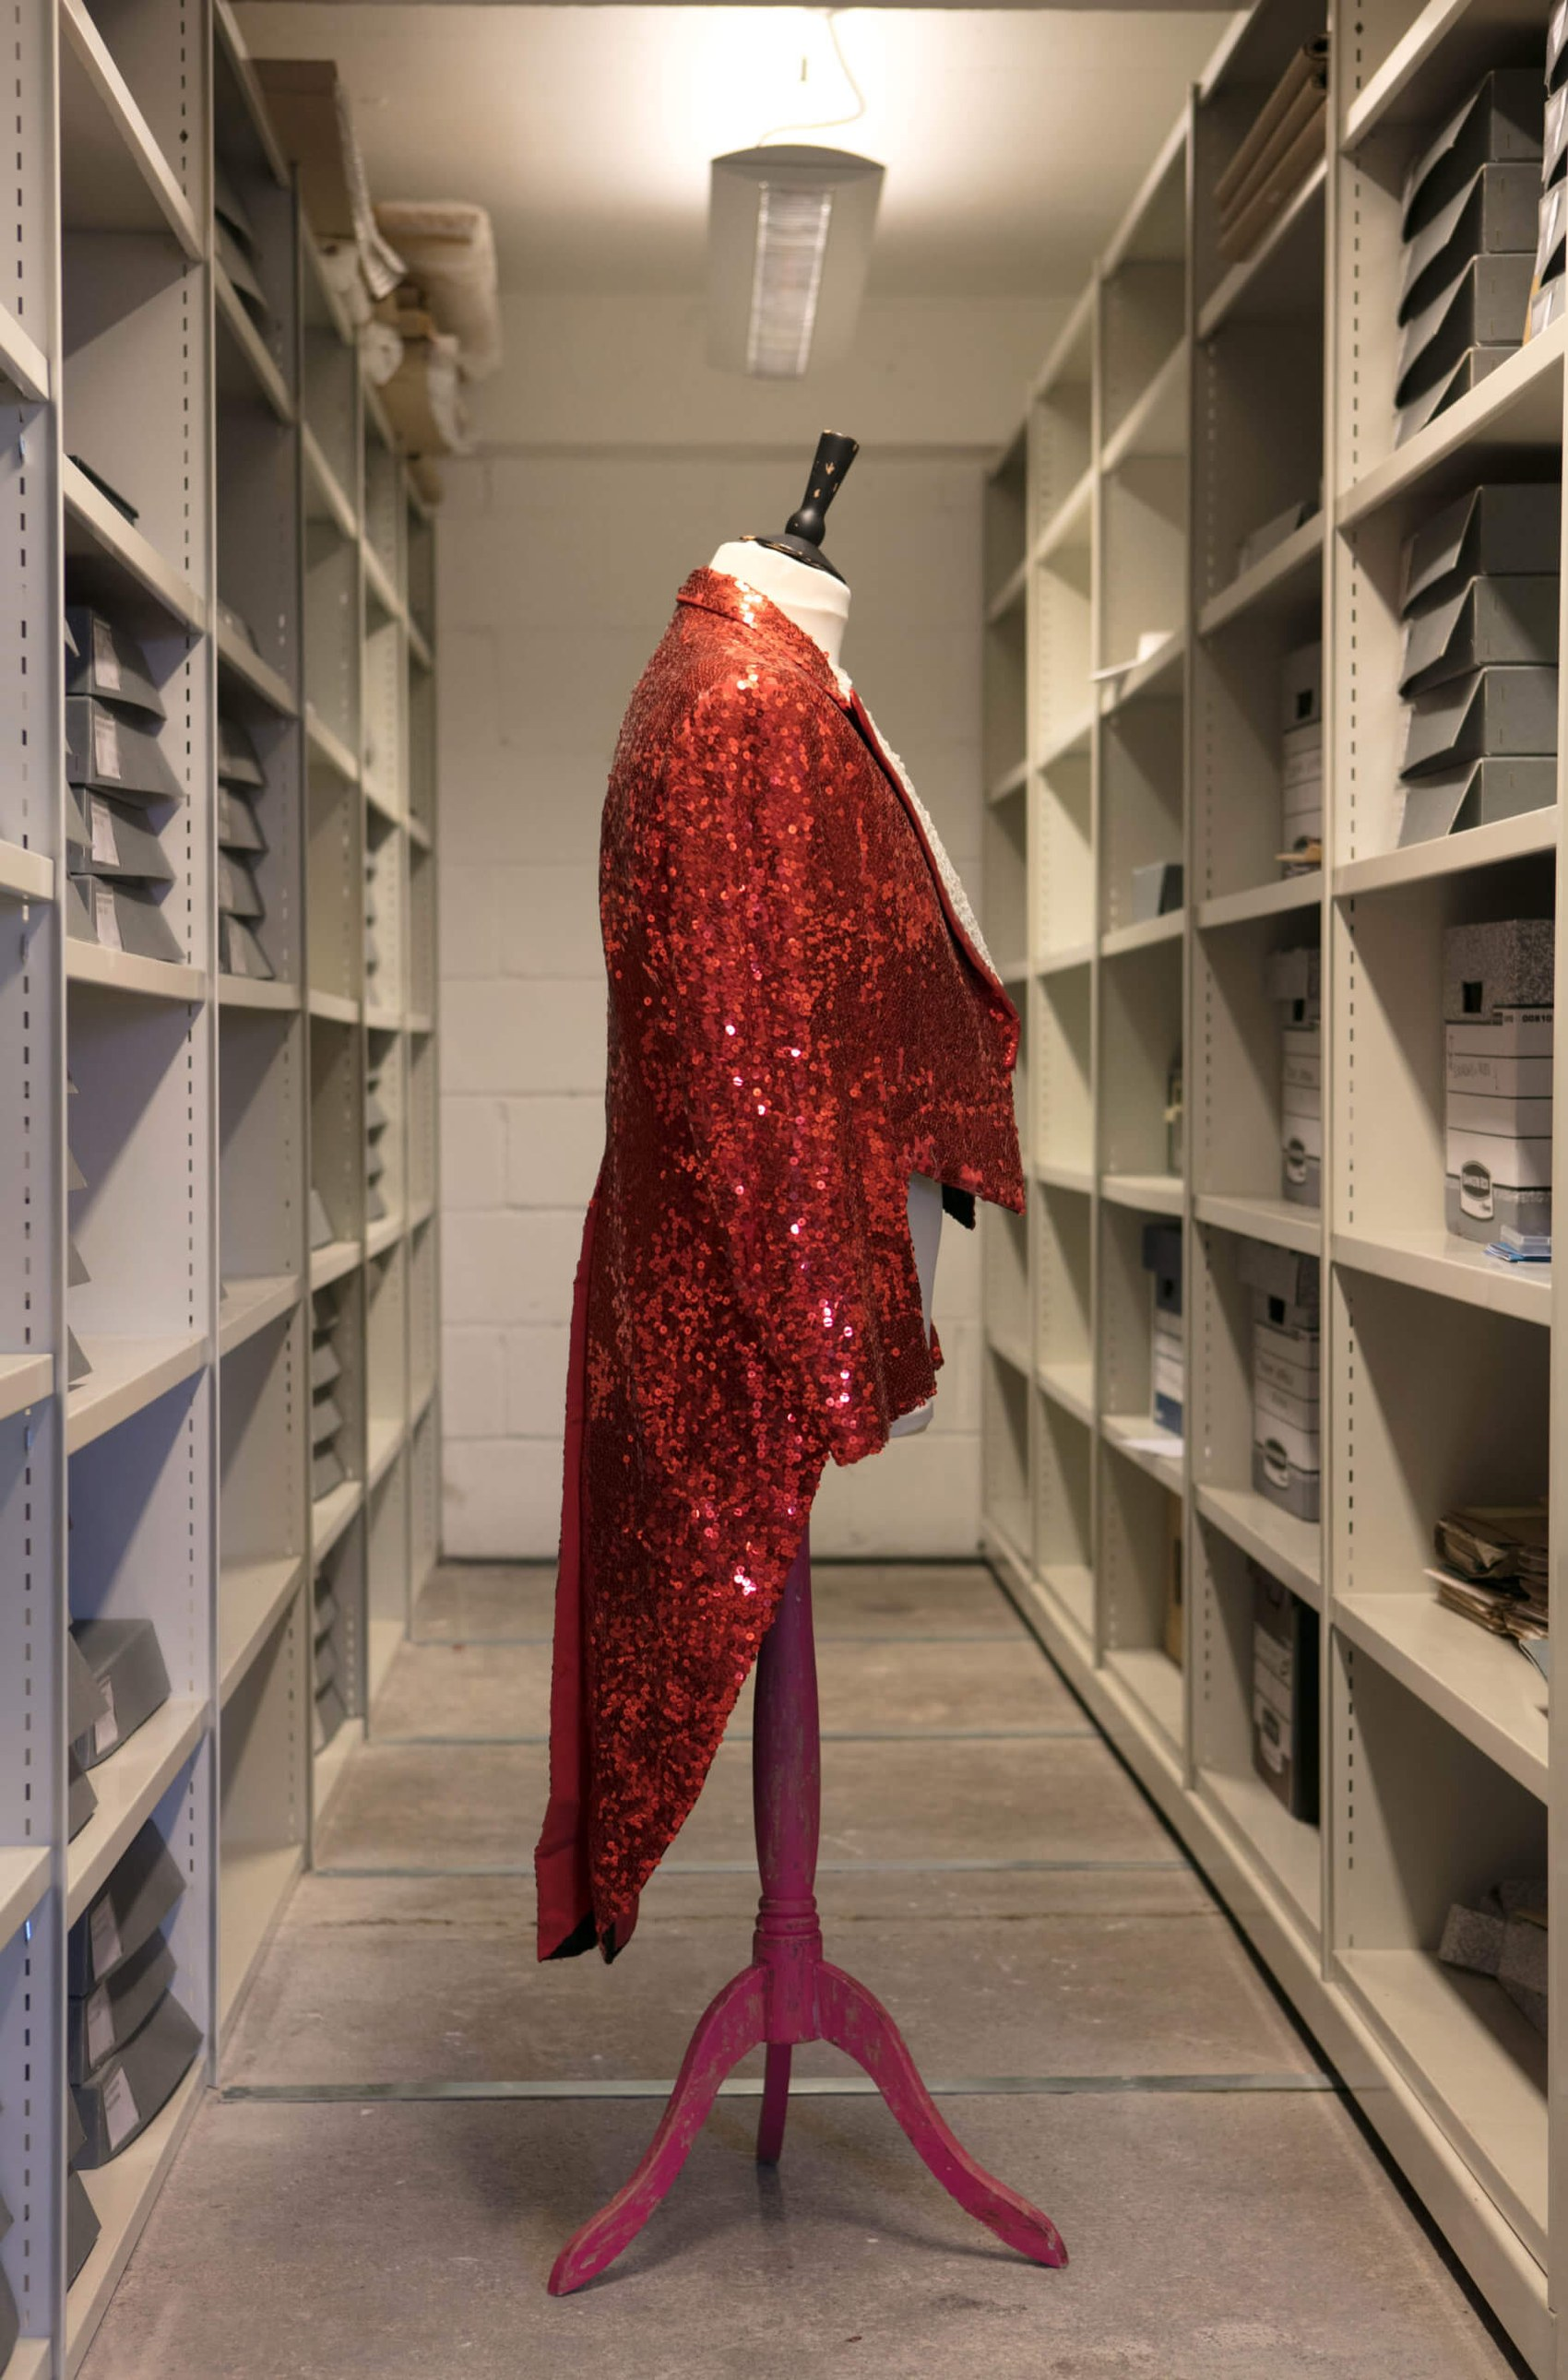 A red sequin tailcoat that was worn on stage by Scottish entertainer Jimmy Logan. It's displayed on a mannequin in the RCS archive